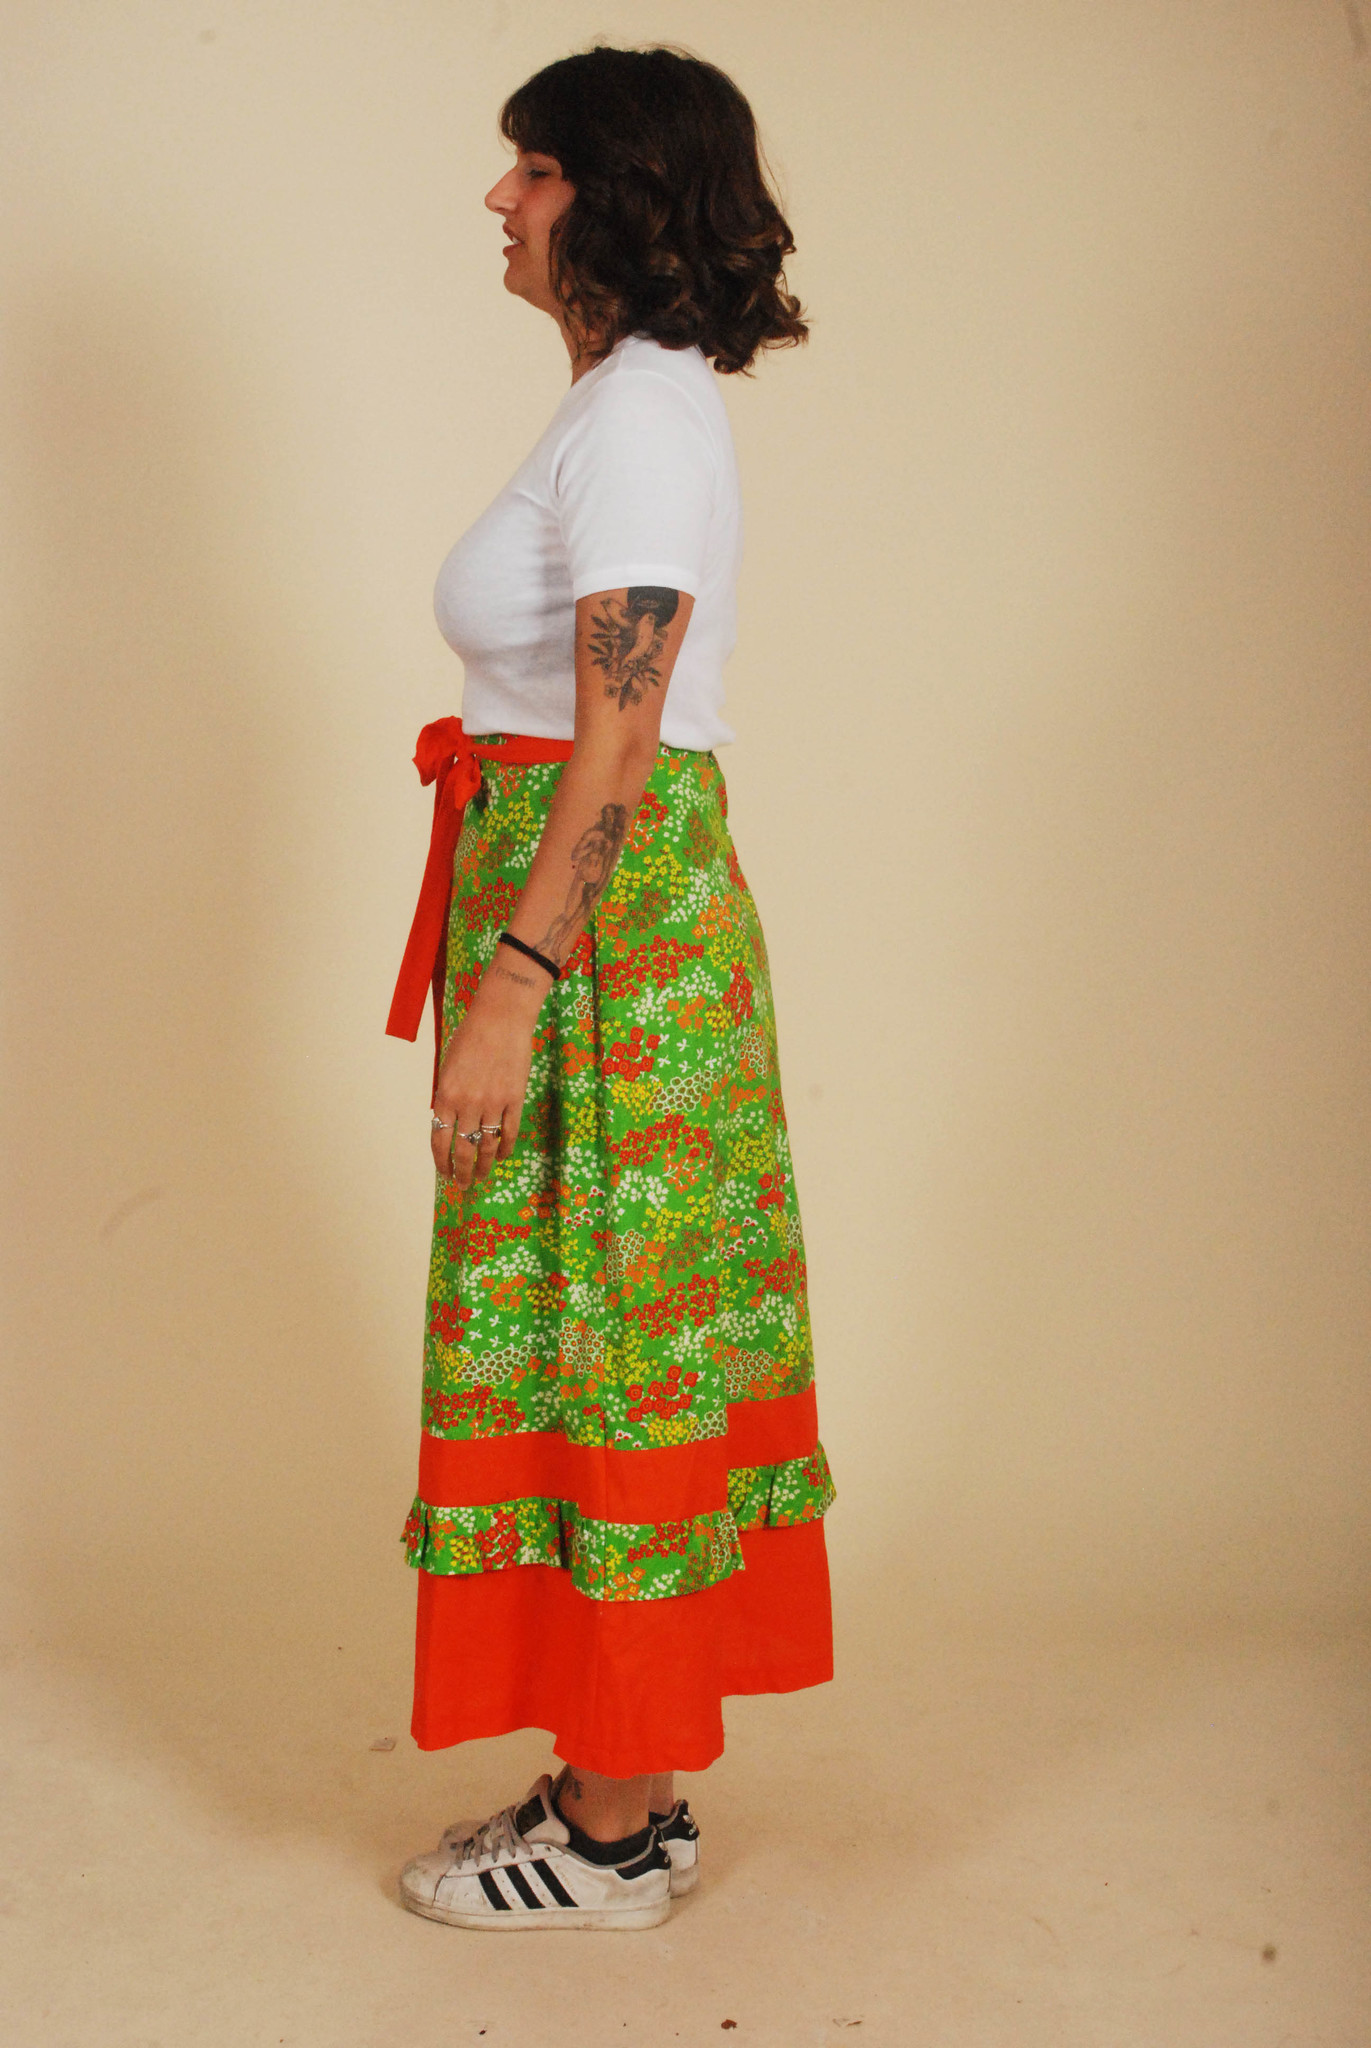 Green 70s floral skirt